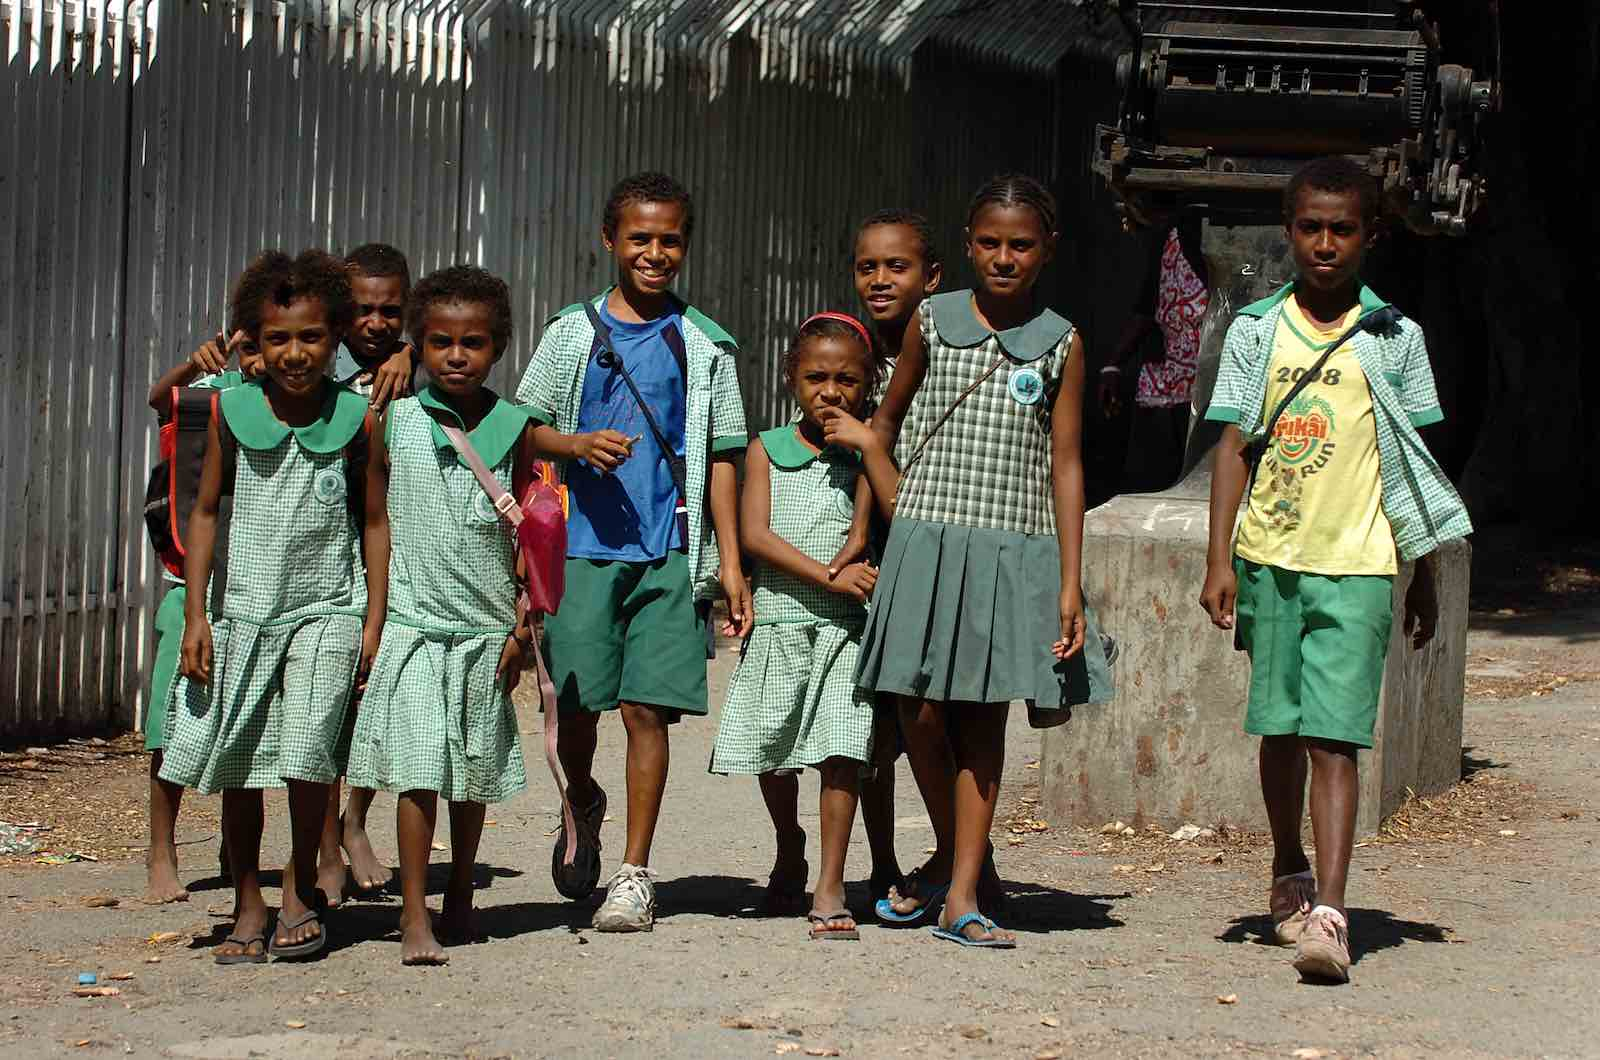 Schoolchildren in Port Moresby, Papua New Guinea (Photo: Commonwealth Secretariat/Flickr)